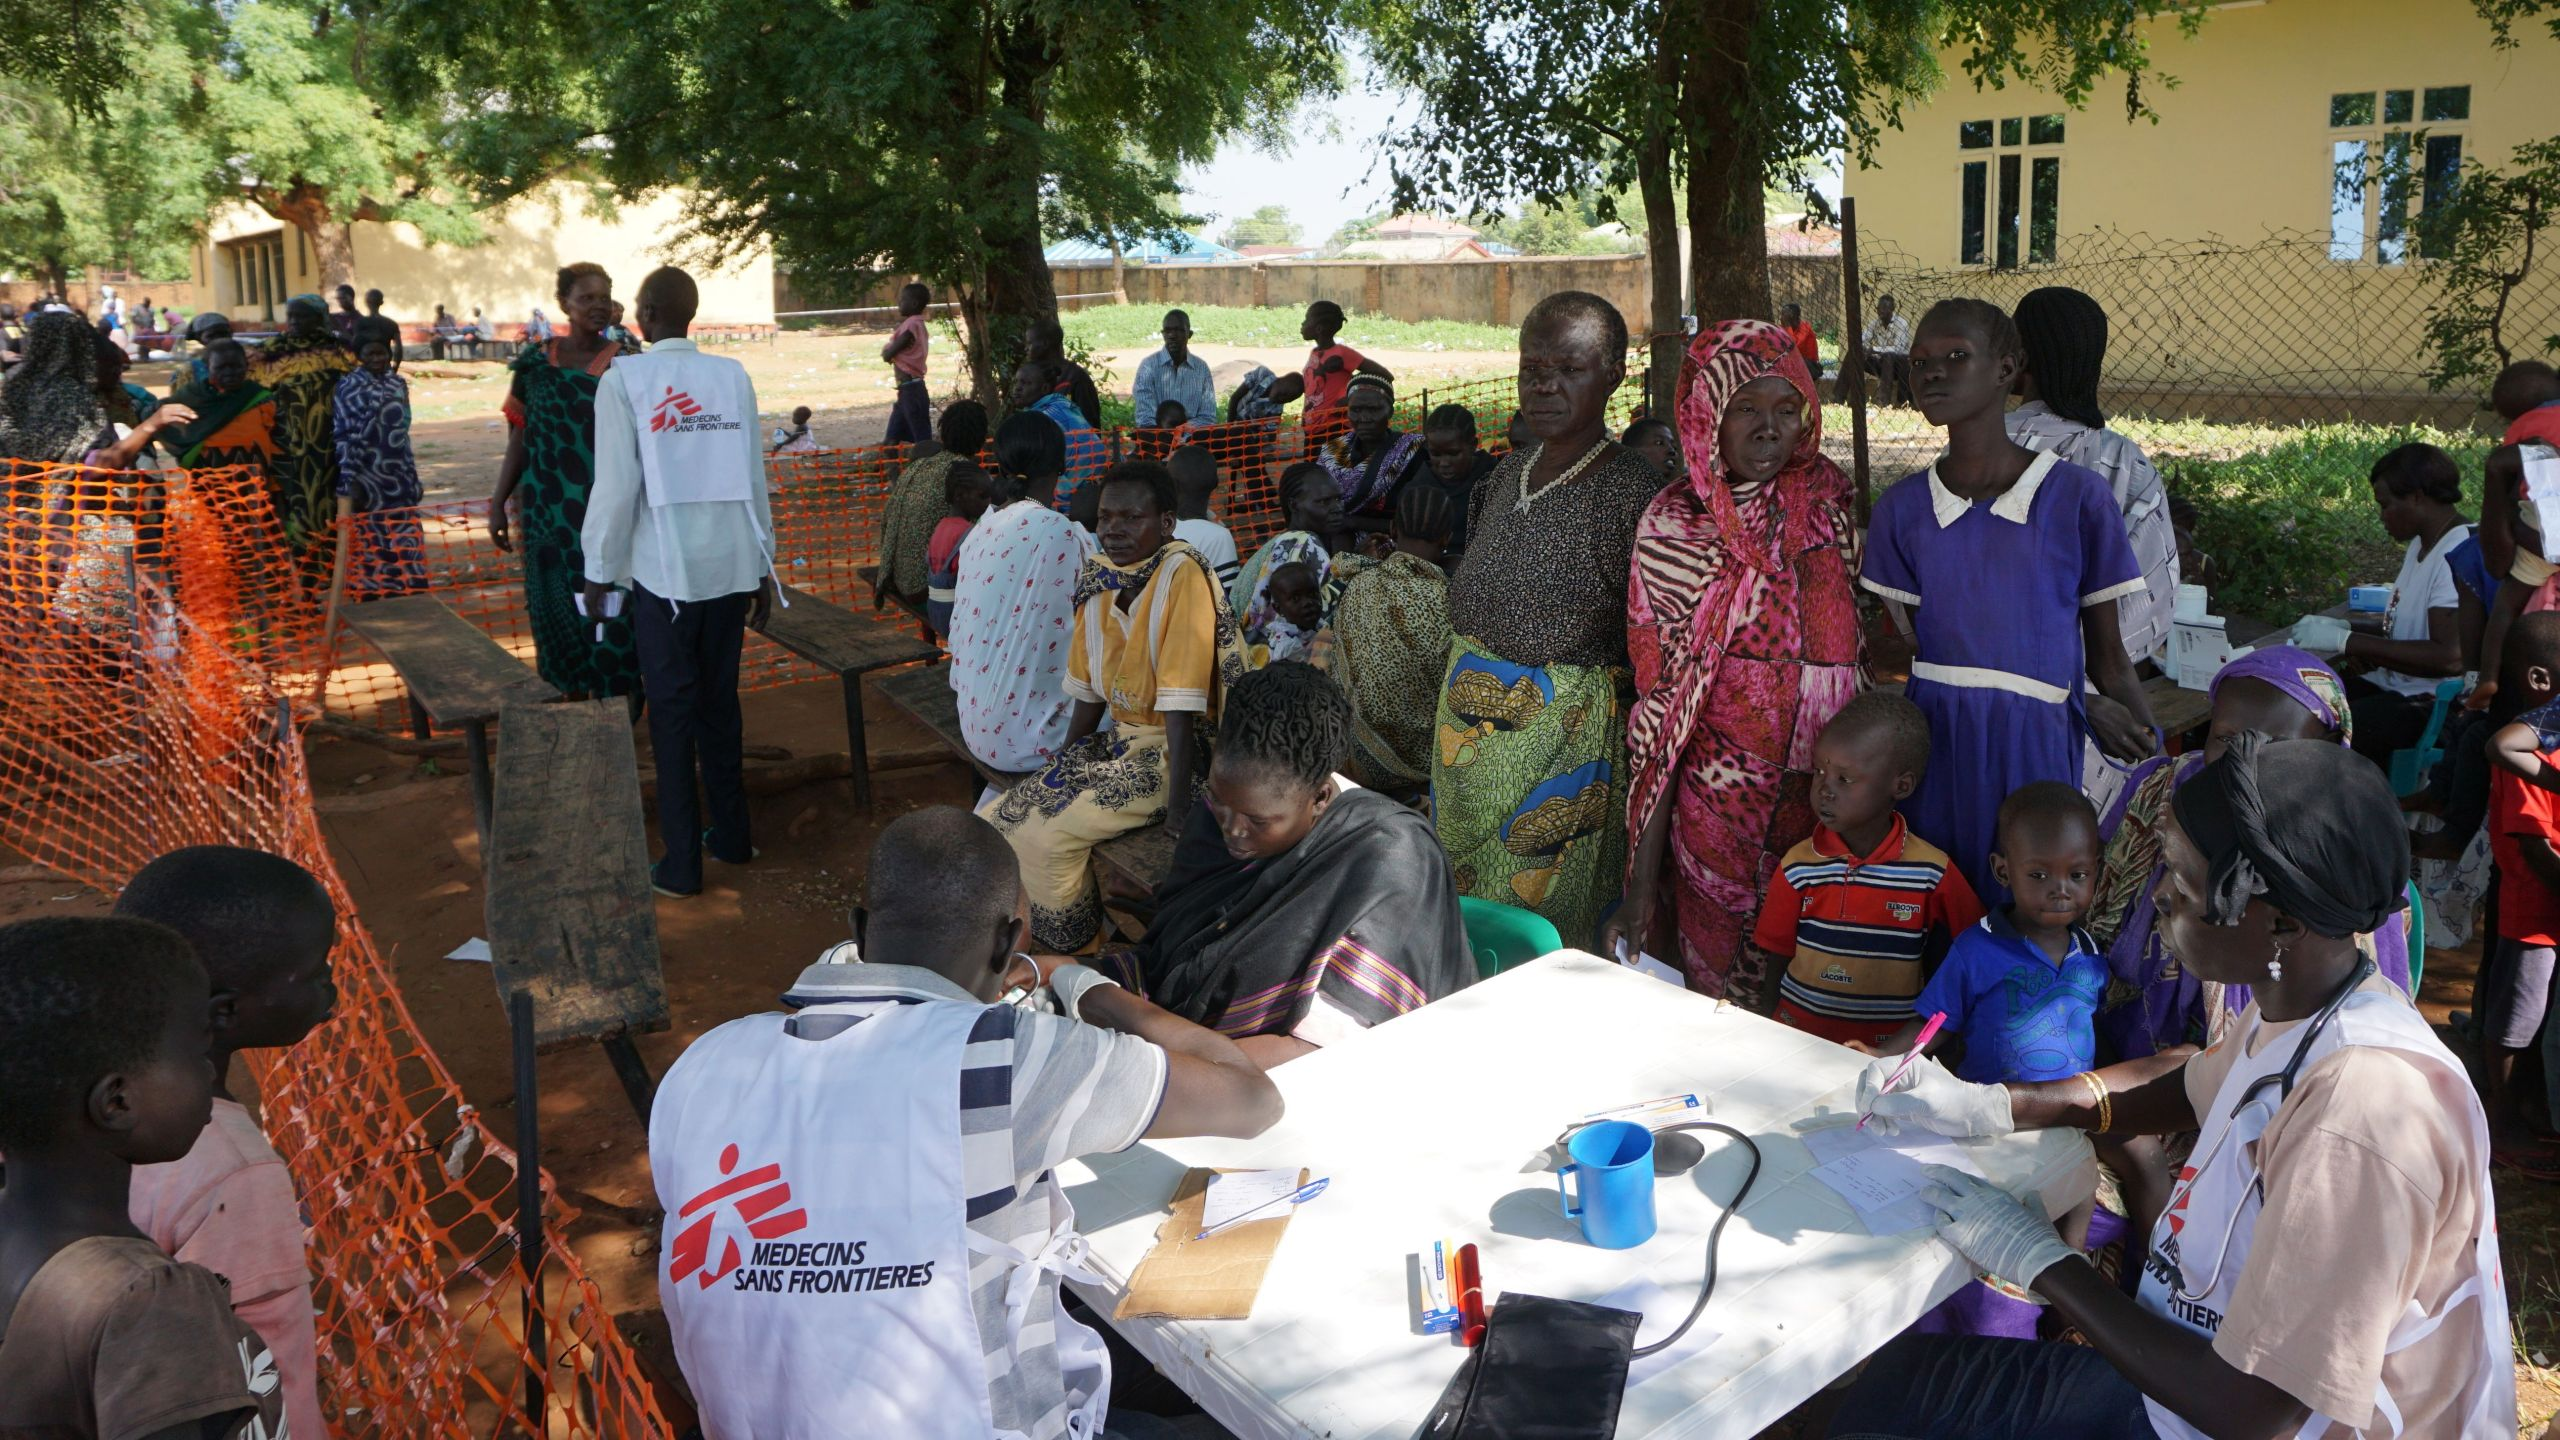 Medics from aid agency Doctors Without Borders (MSF) treat patients at a makeshift clinic in the grounds of the Catholic Cathedral in the South Sudanese capital Juba on July 15, 2016, after days of fighting left hundreds dead and forced thousands to flee their homes. (Credit: PETER MARTELL/AFP/Getty Images)